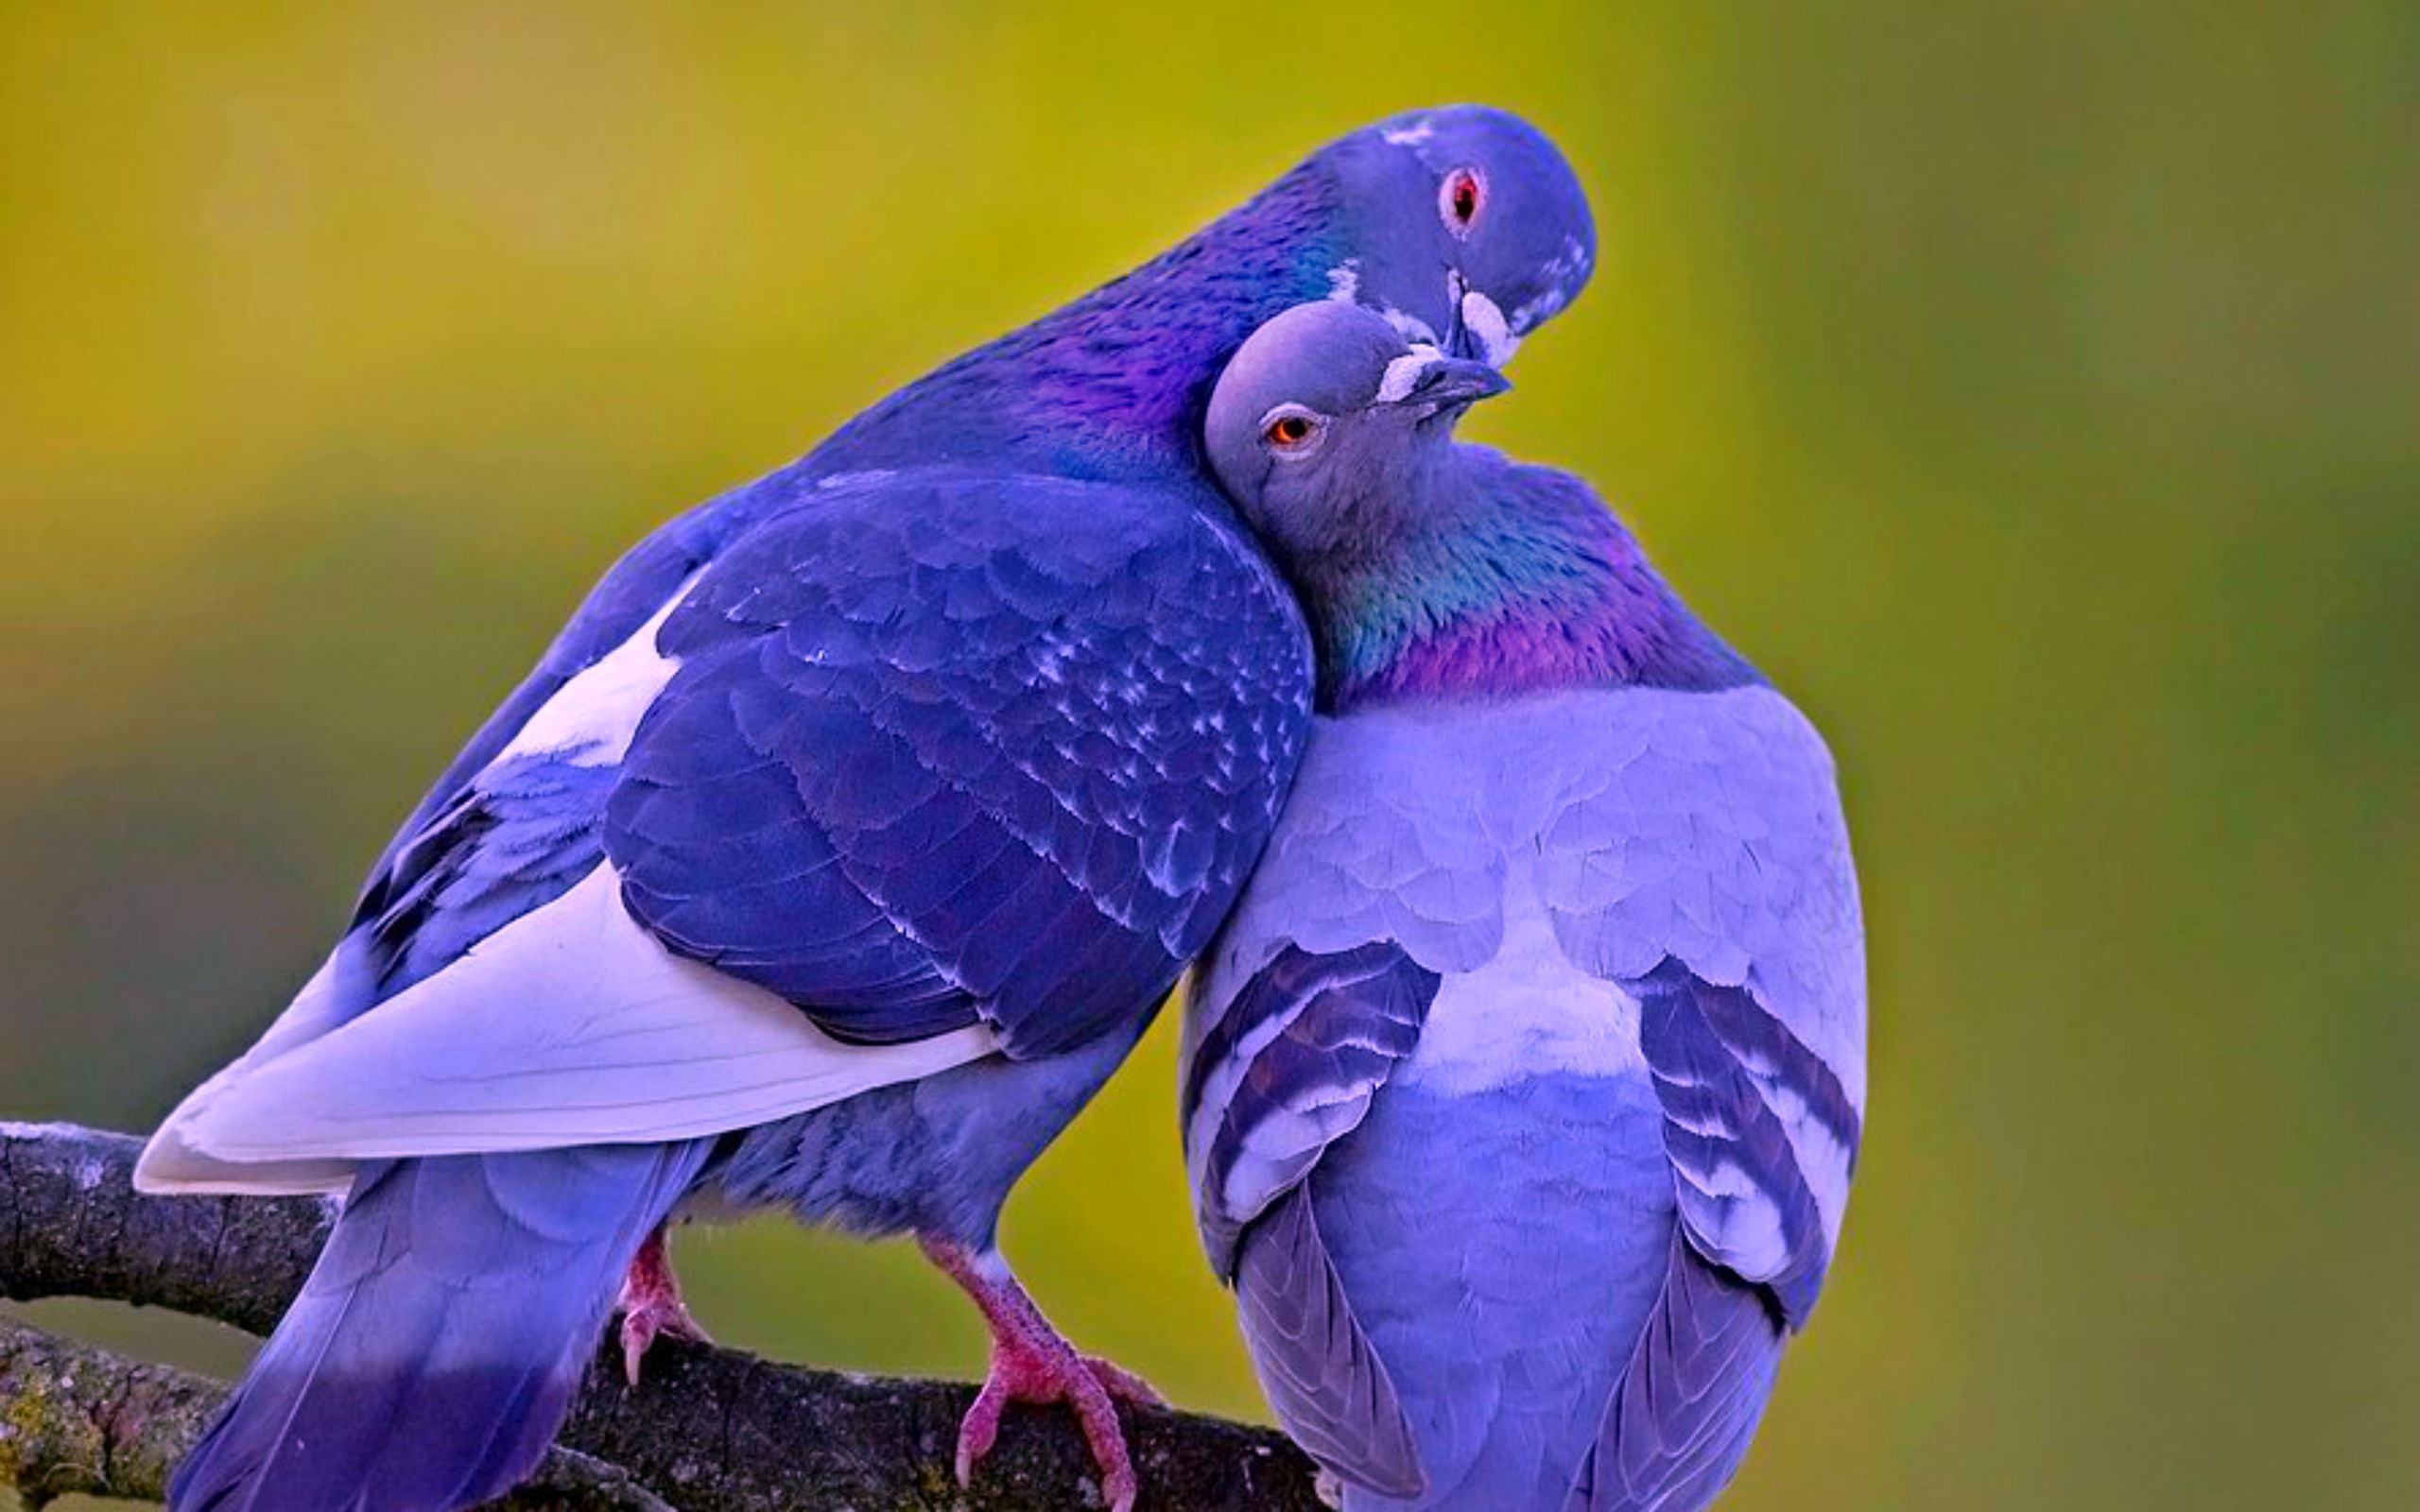 3D Love Birds 11 Wallpaper   Hdlovewallcom TOOL SHED 1 2560x1600